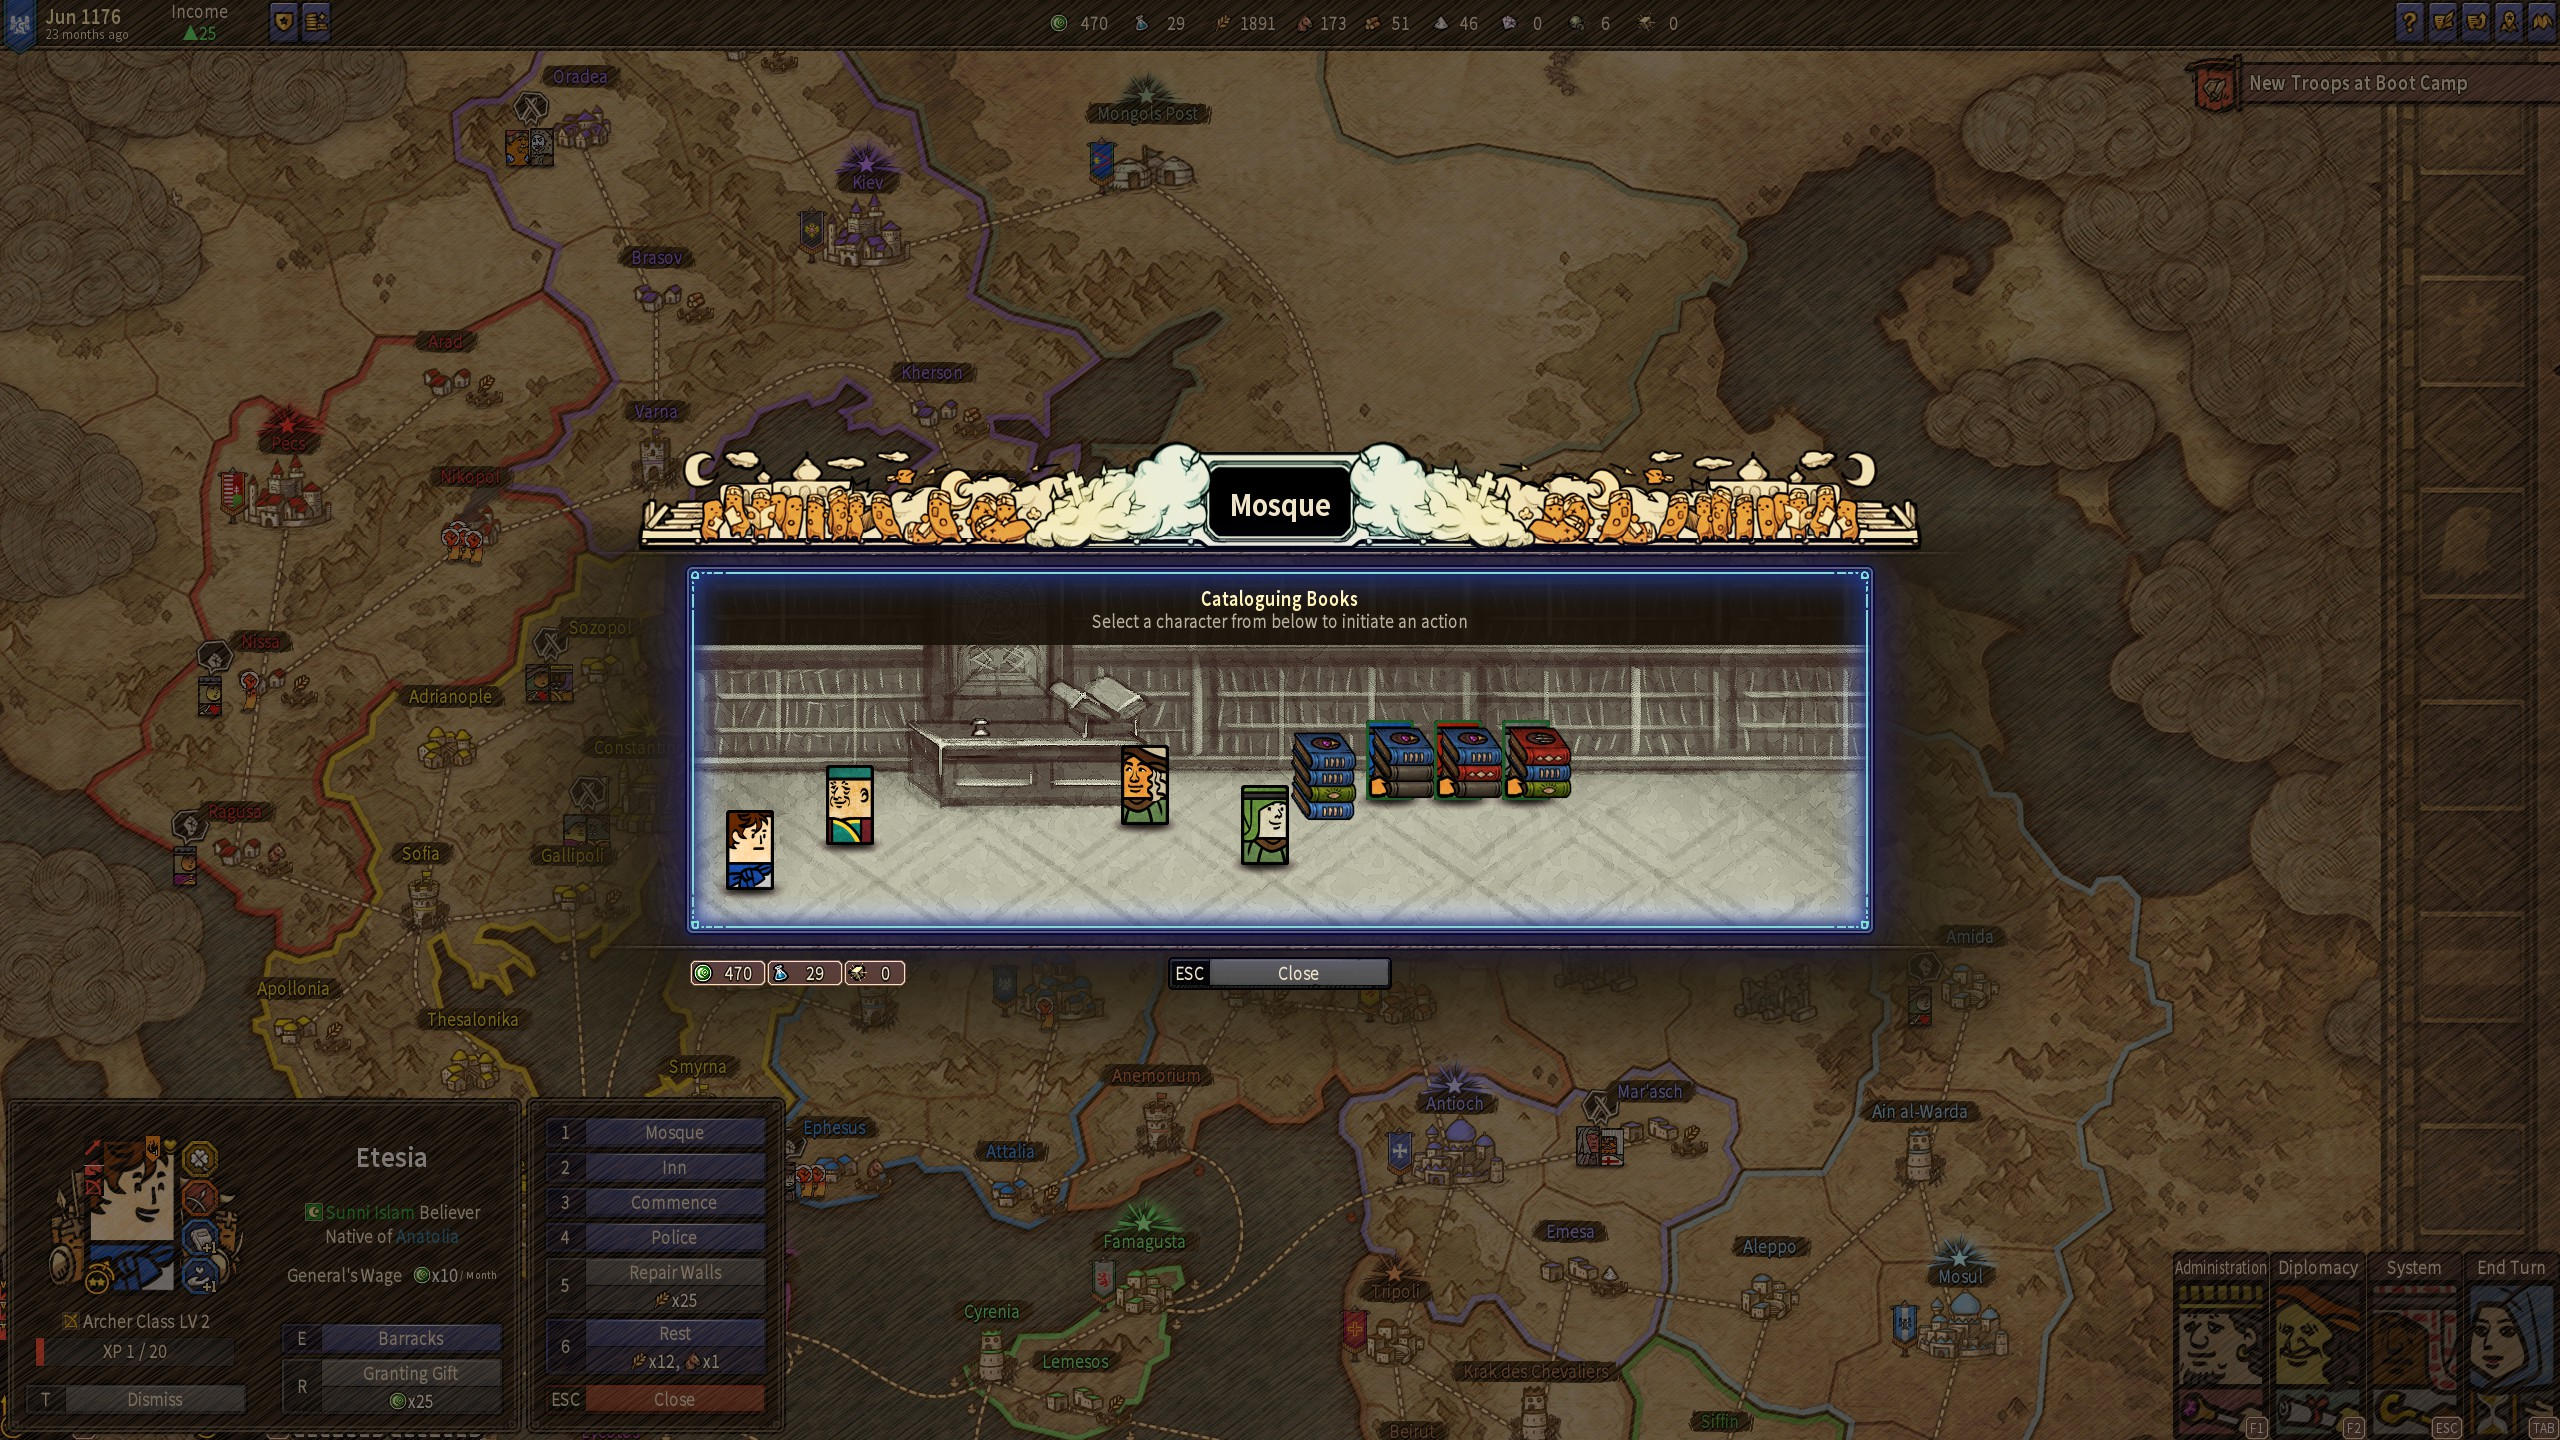 A screenshot of a match-three mini-game in Plebby Quest: The Crusades, where the player must place books in a library.